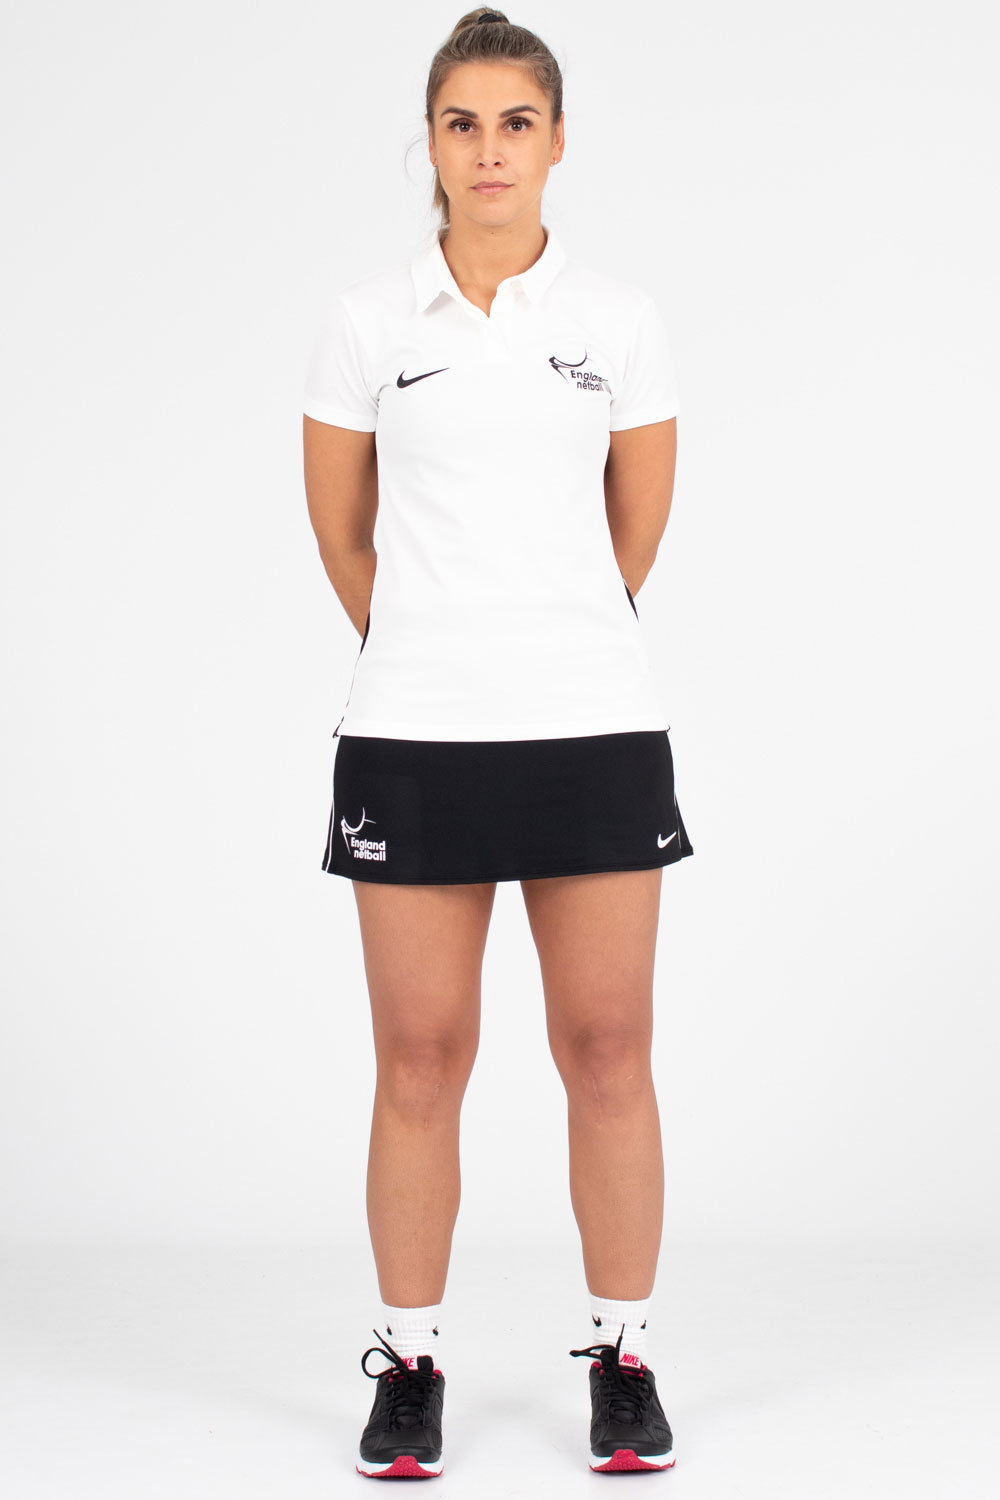 EN-Kitlocker Womens Team White Dri-fit Skort